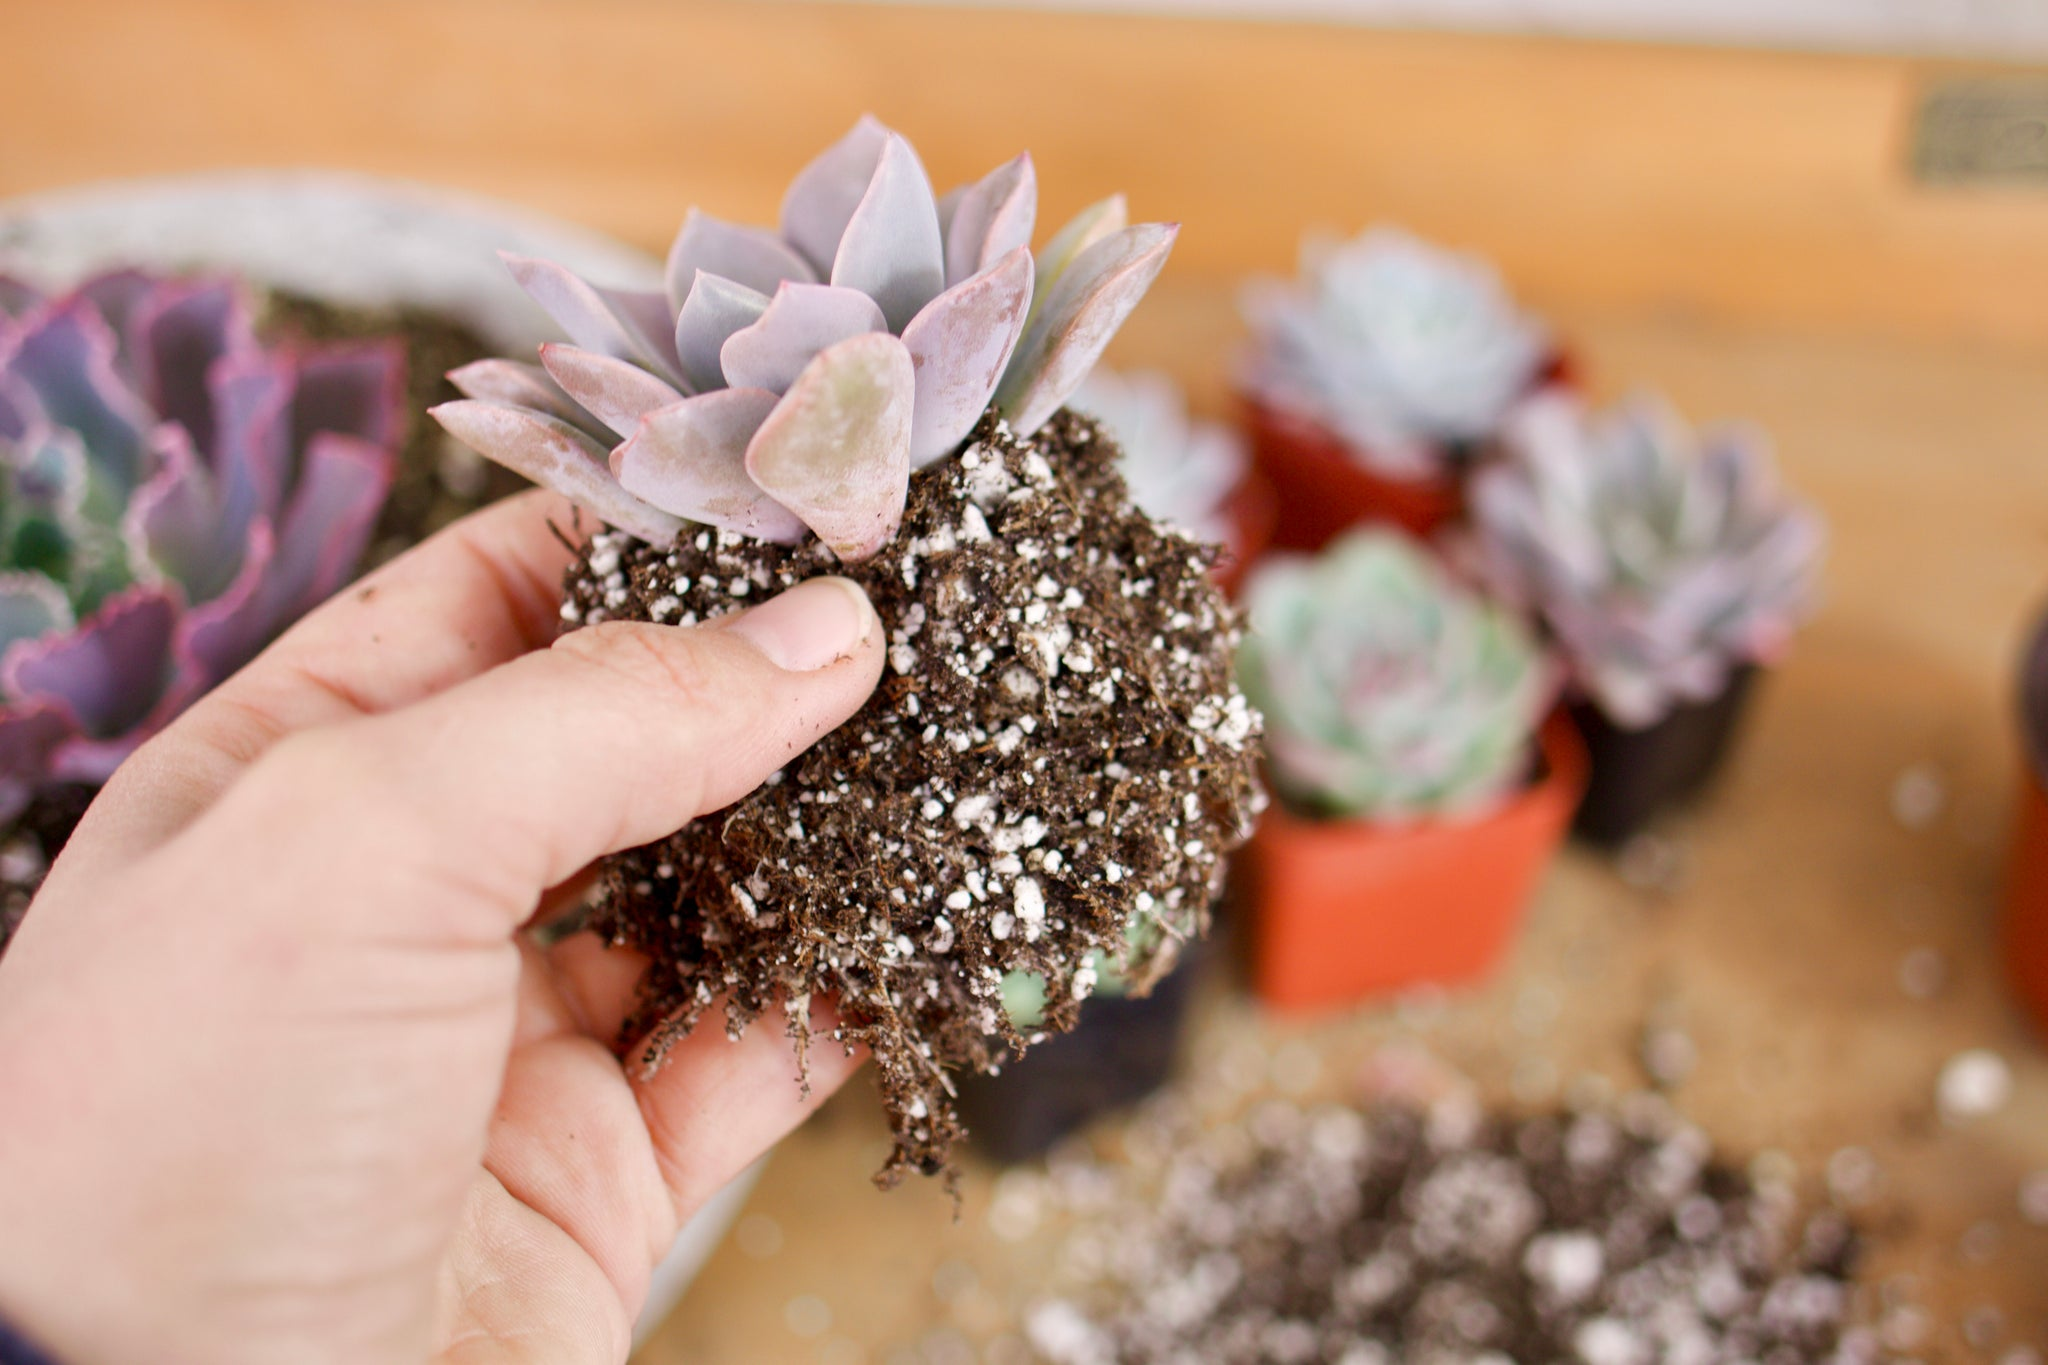 DIY with succulents by succy crafts